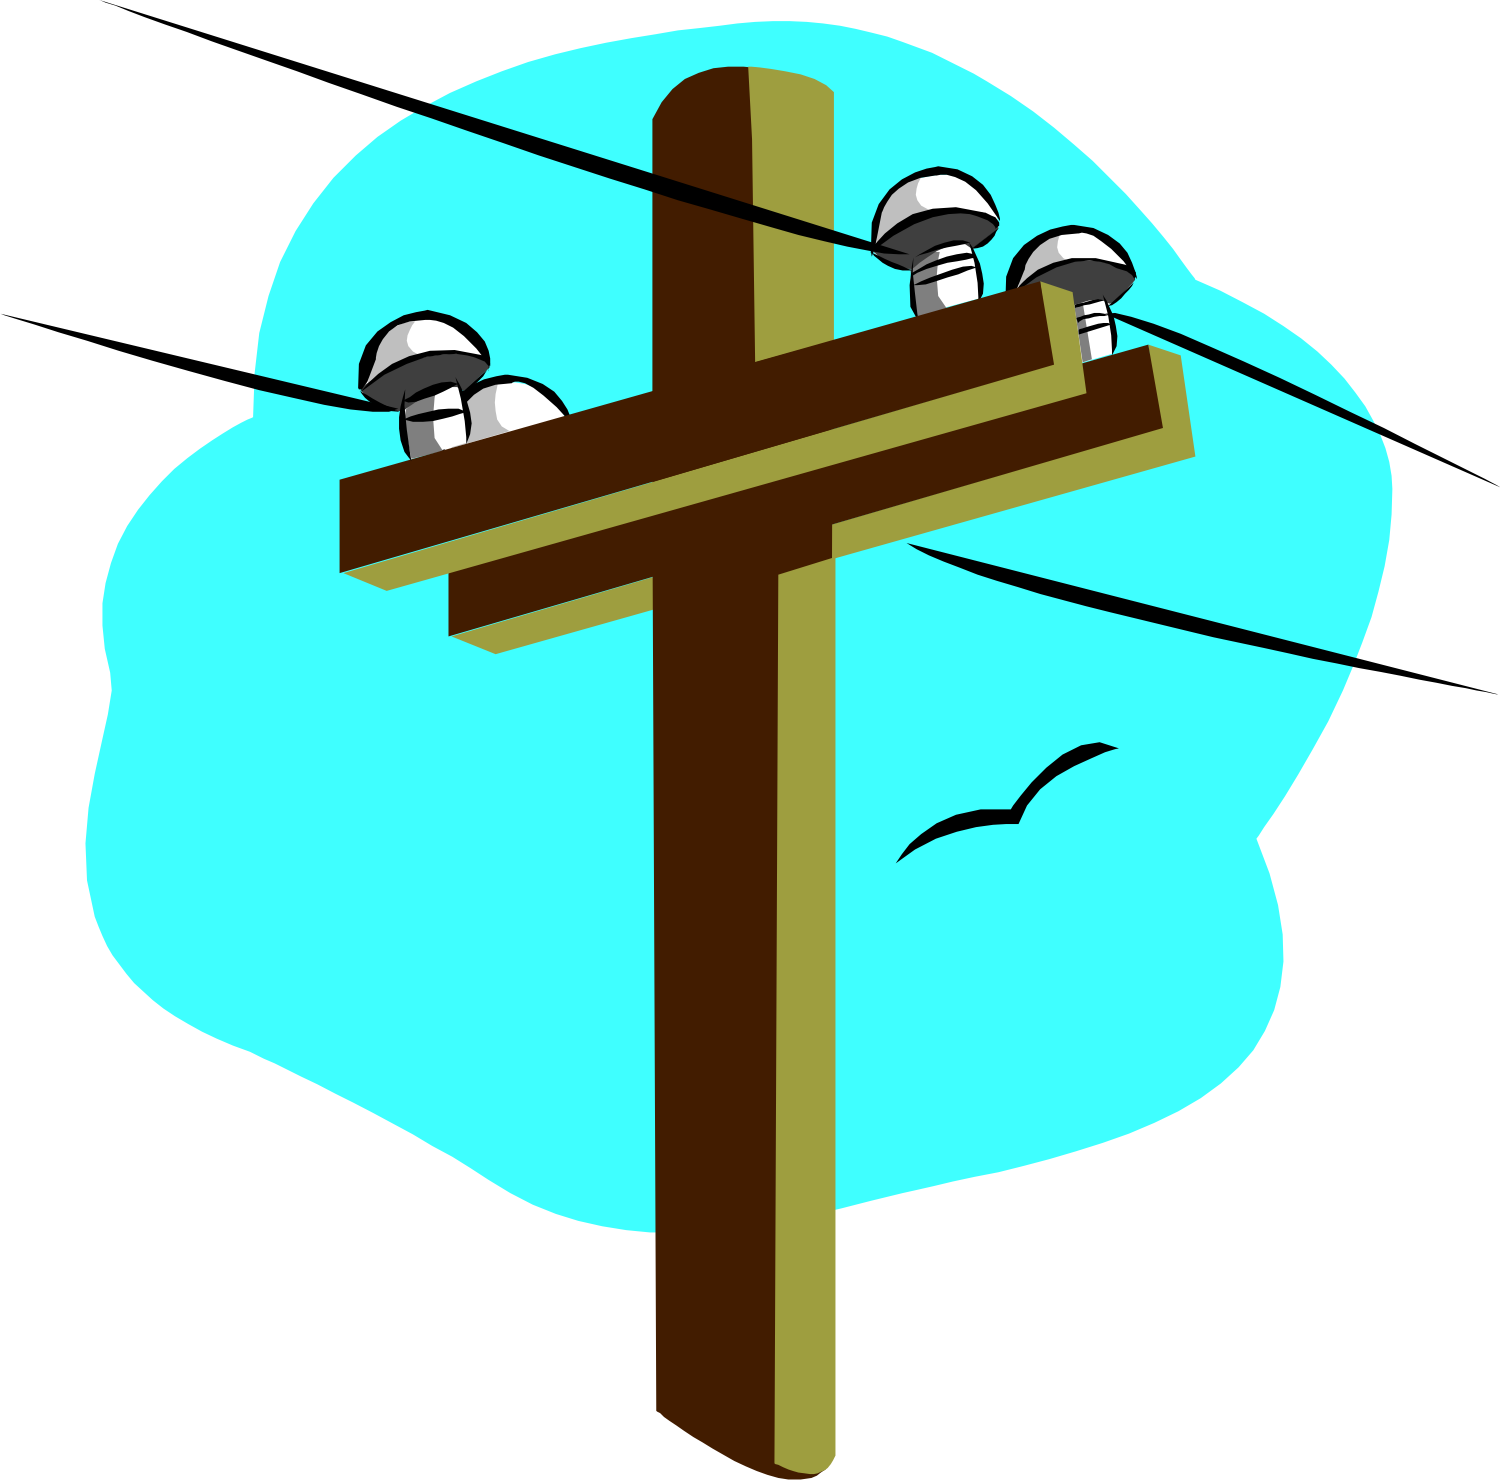 Lamp Post clipart electricity post Clip – Electricity Electricity Poles